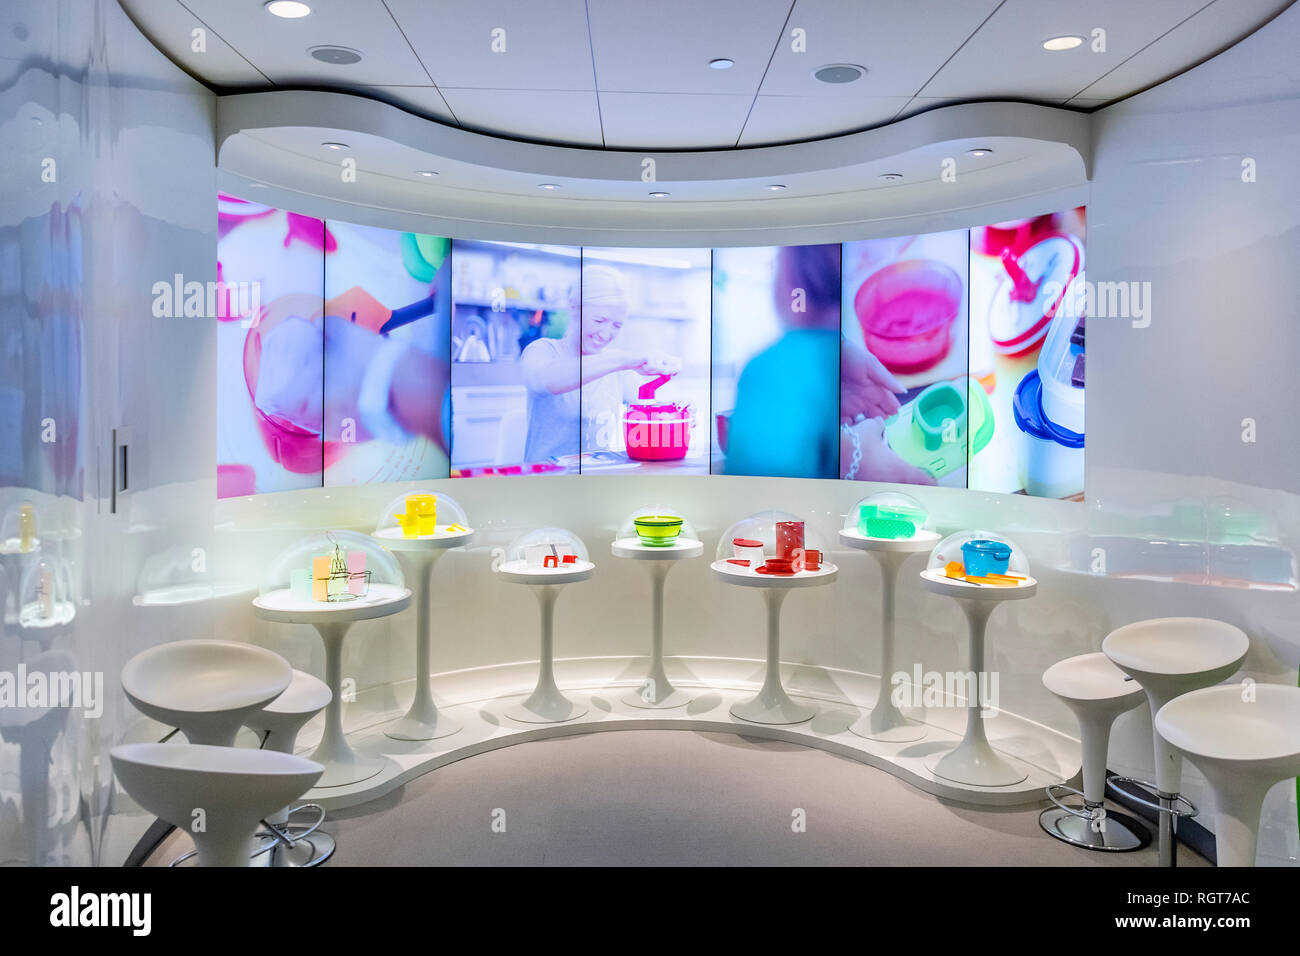 Tupperware Brands Corpotate history and product display at corporate headquarters, Kissimmee, Florida, USA. - Stock Image